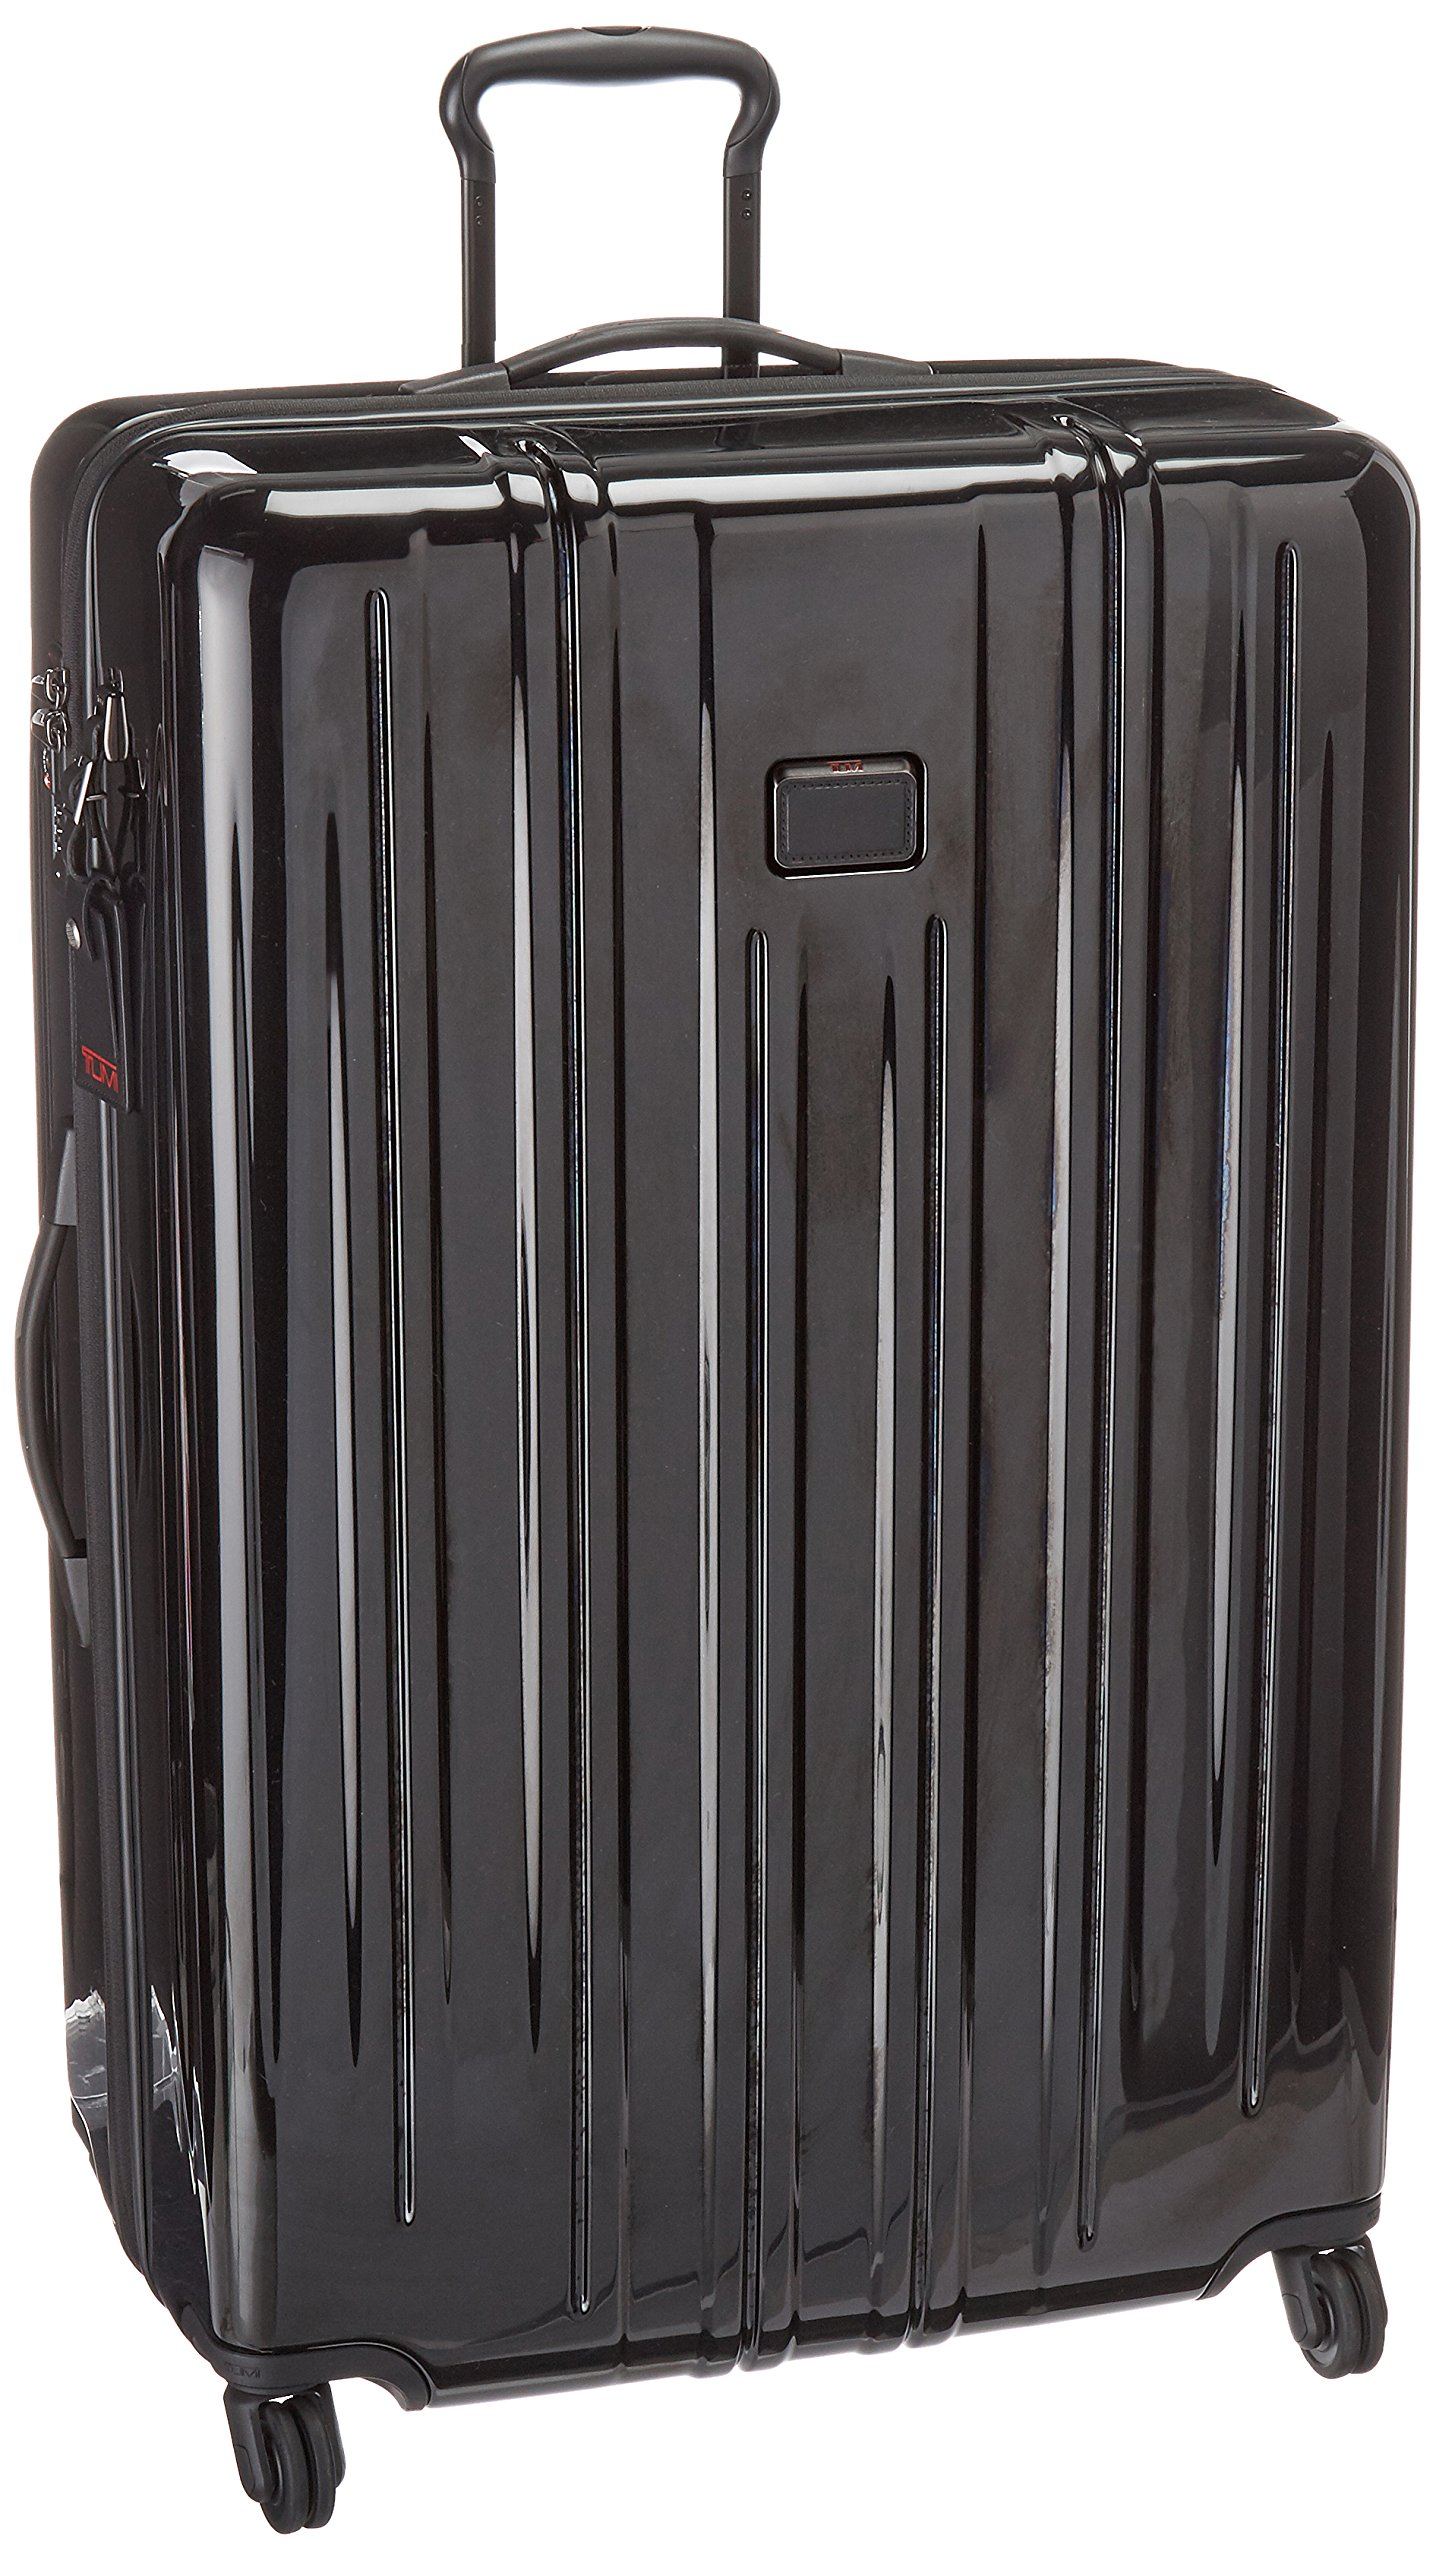 Tumi V3 Worldwide Trip Packing Case, Black by Tumi